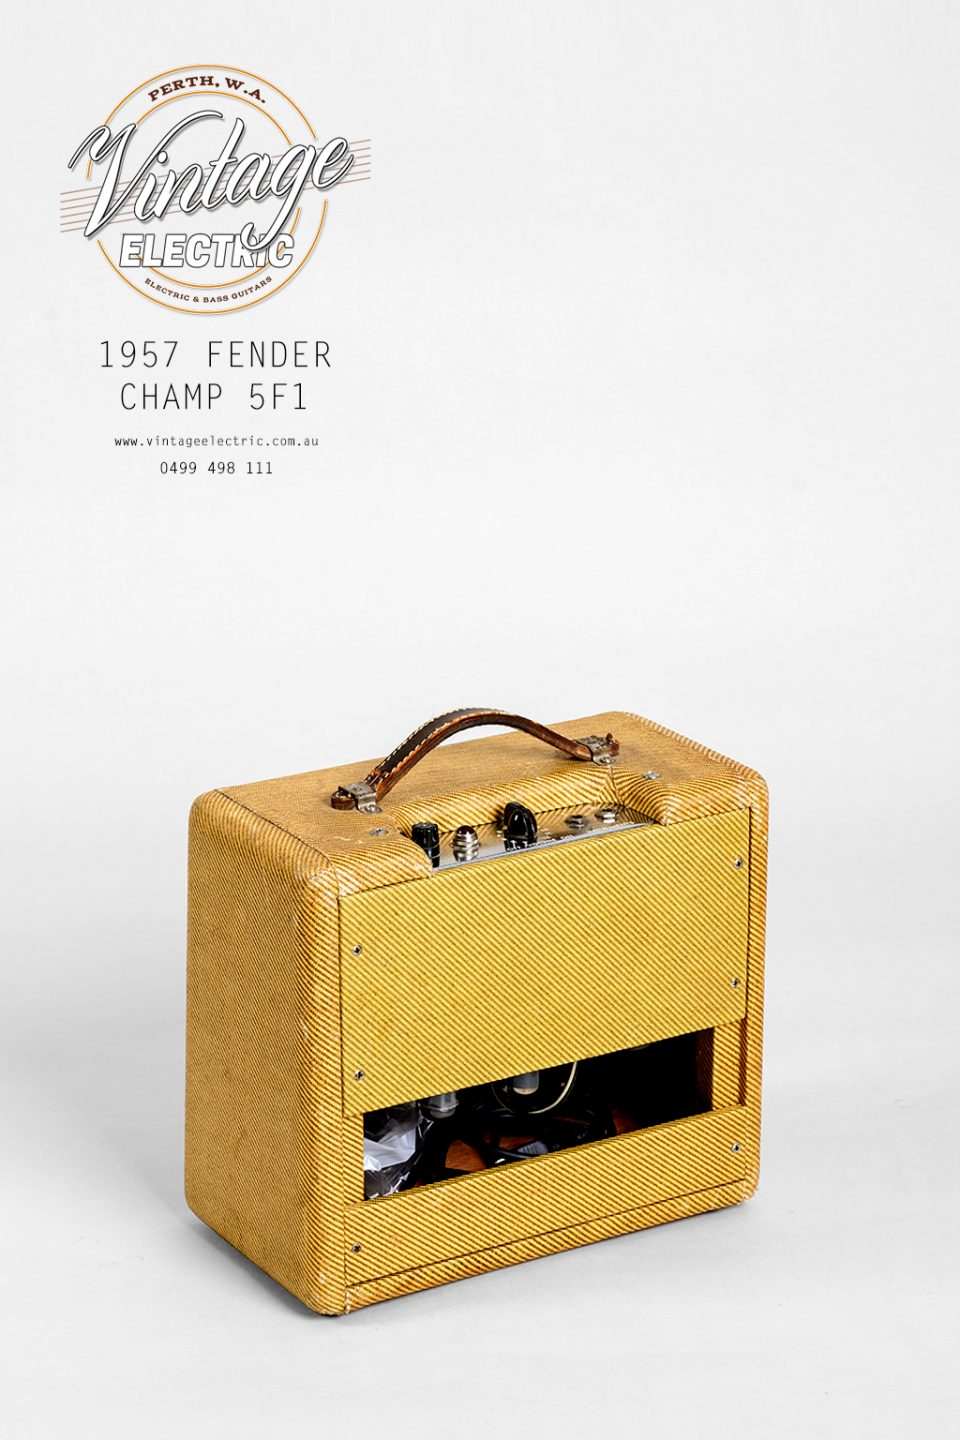 1957 Fender Champ 5F1 Back